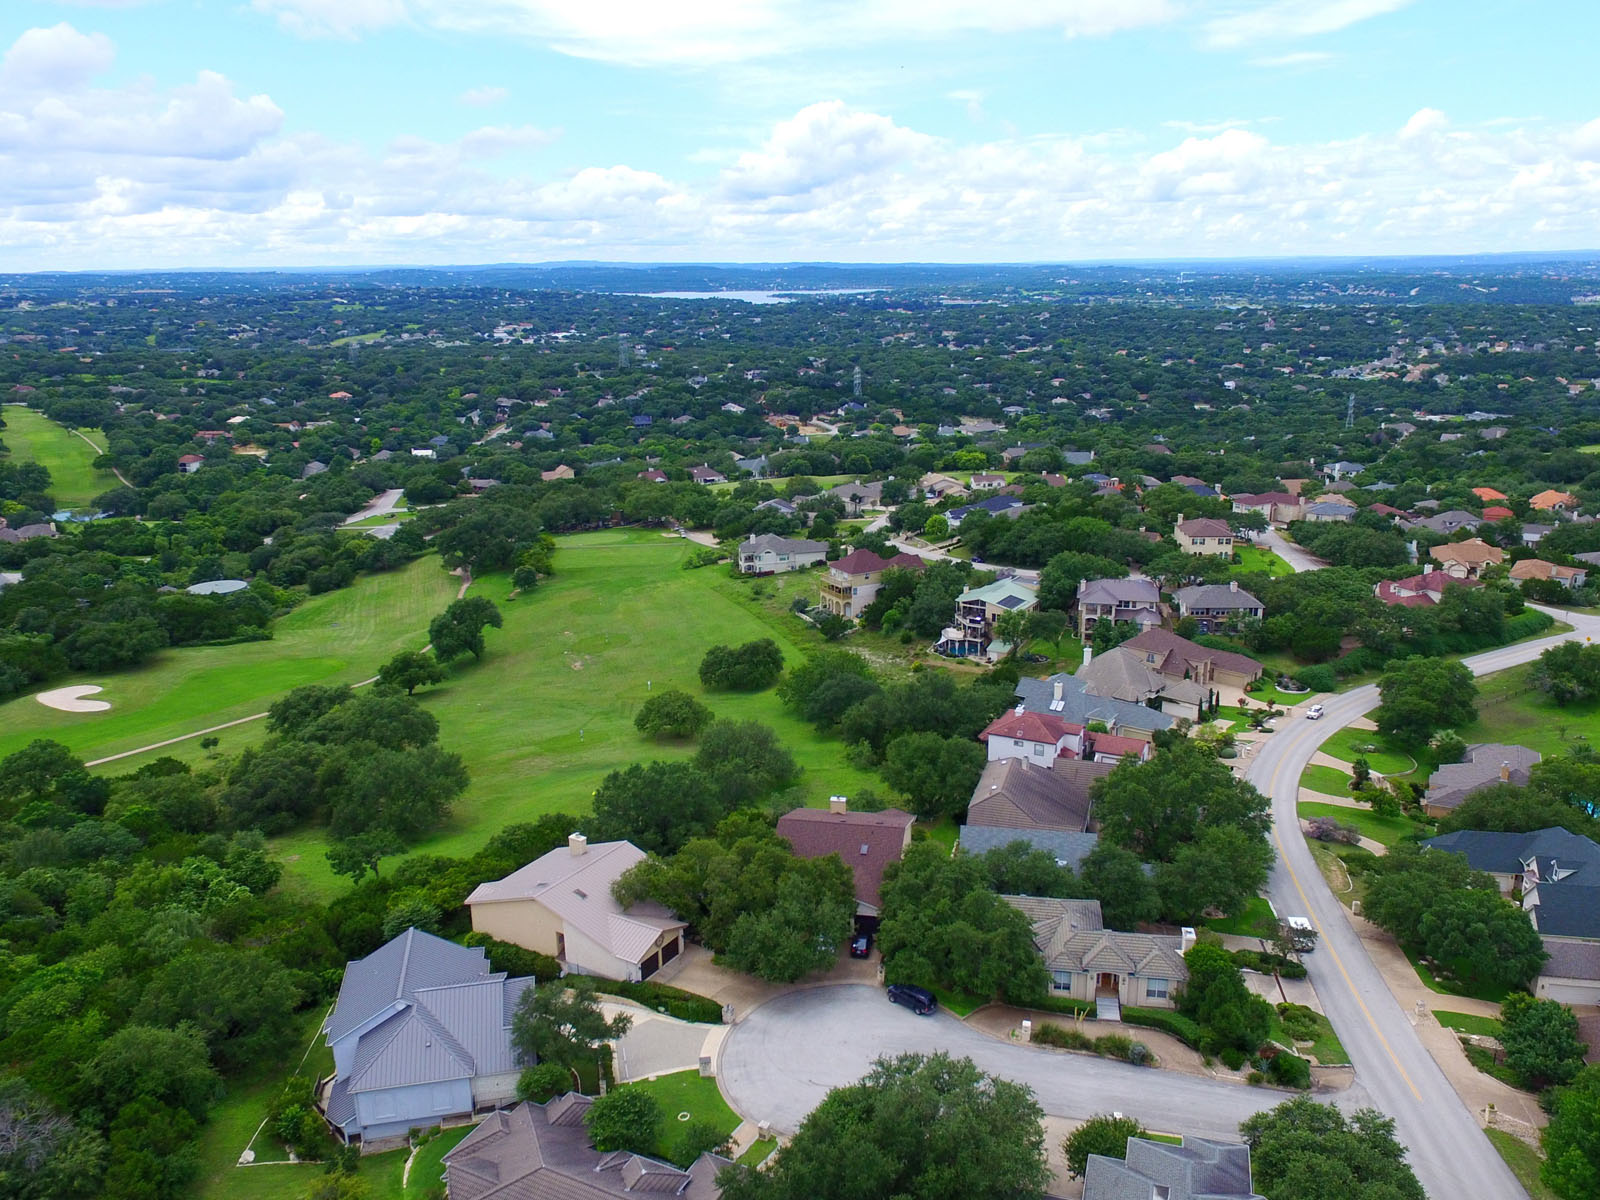 Single Family Home for Sale at Remarkable Lakeway Remodel 106 Confidence Cv Lakeway, Texas, 78734 United States